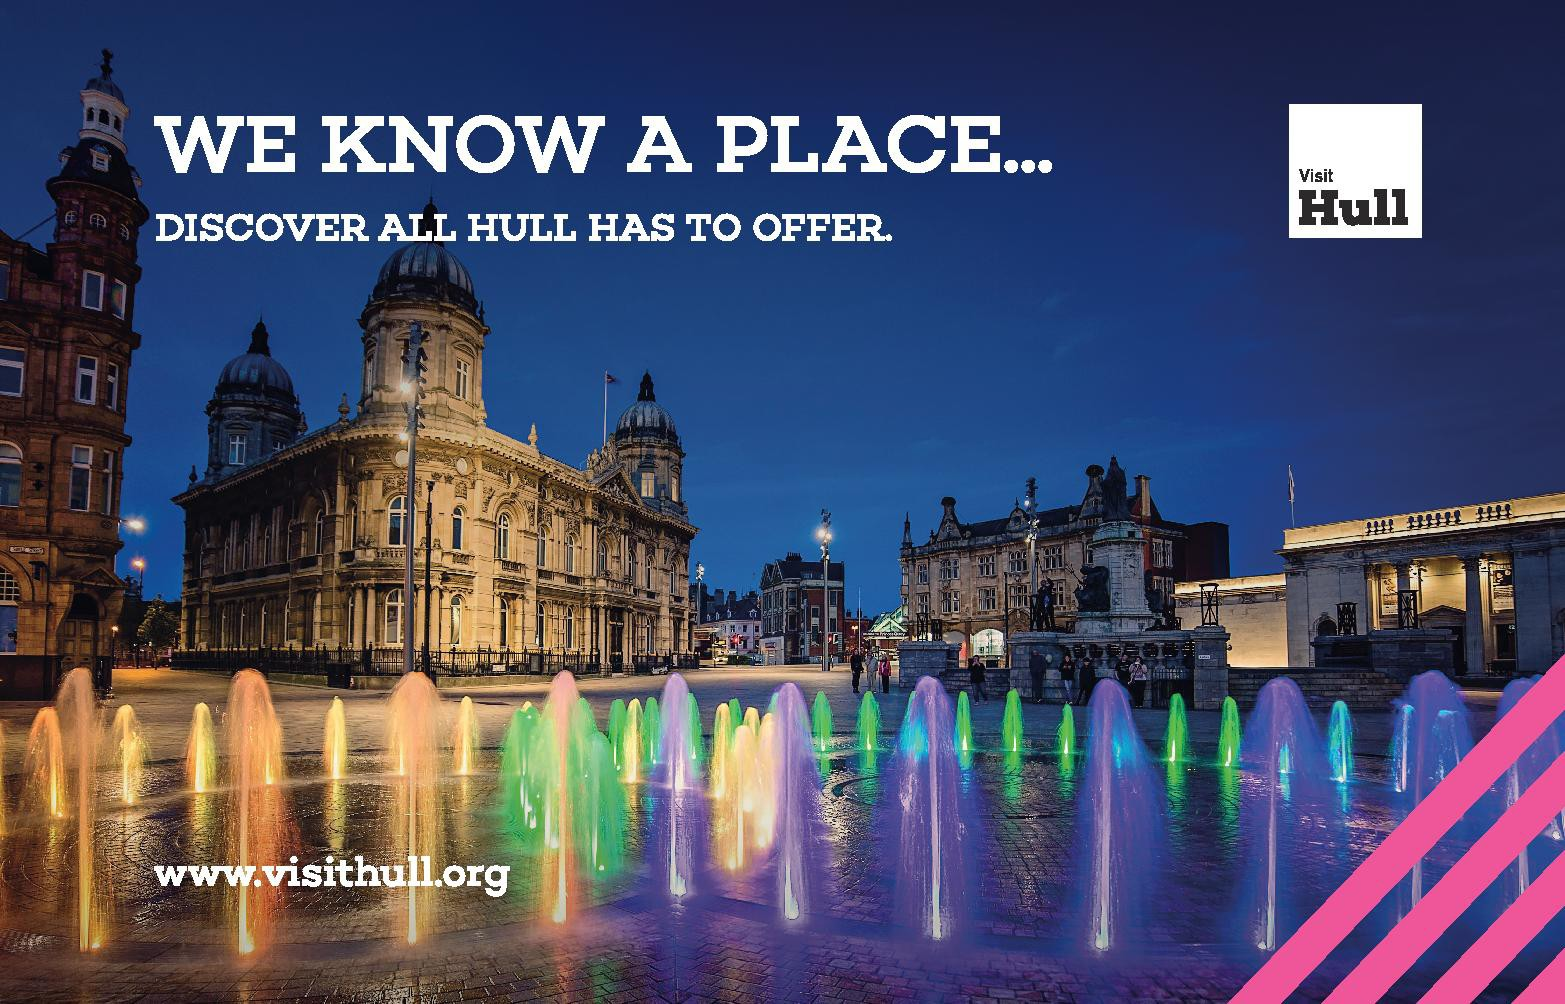 Discover all Hull has to offer